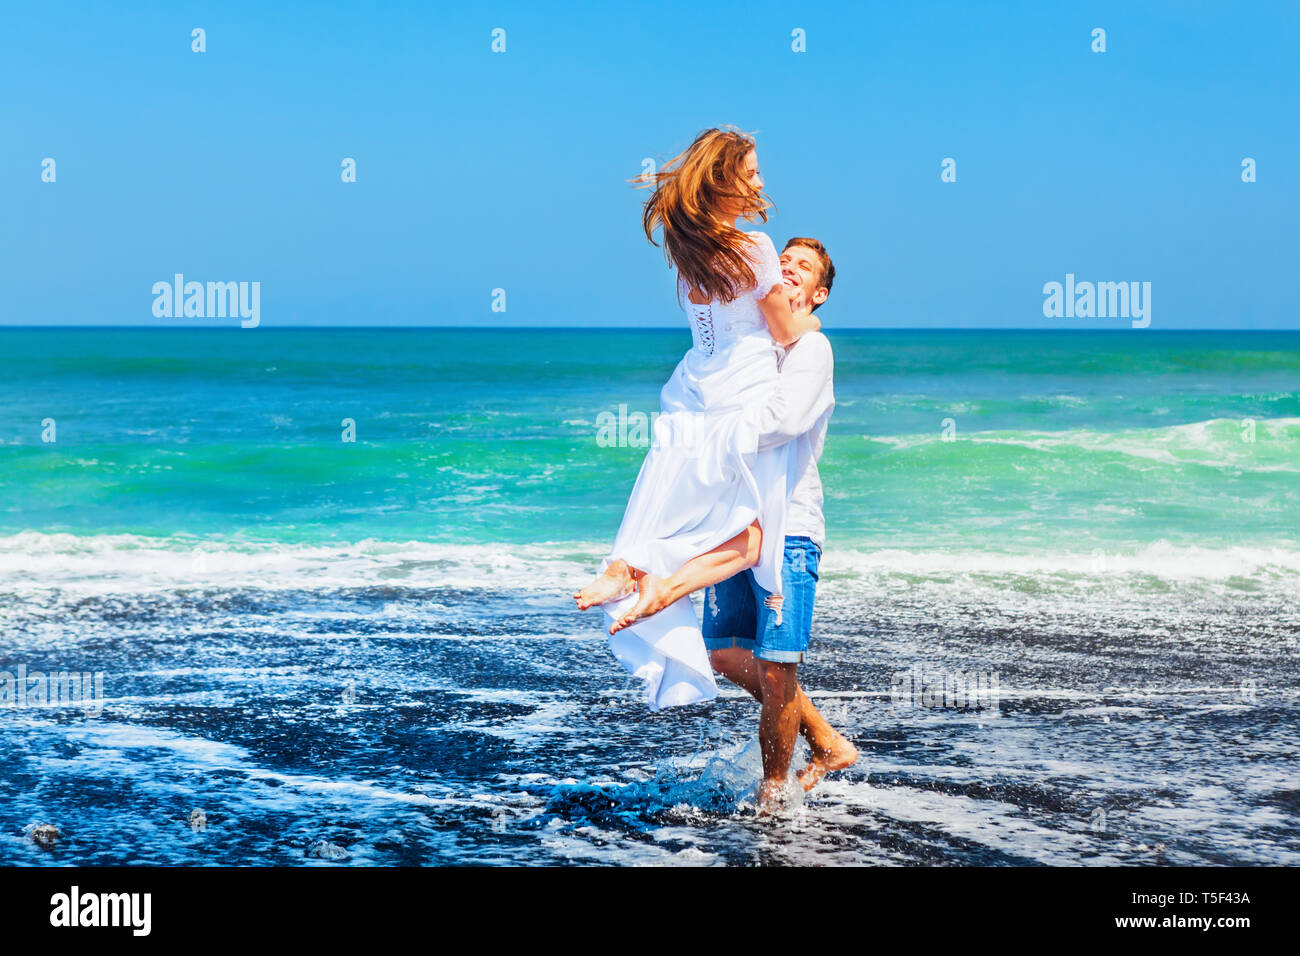 Happy family on honeymoon holiday - just married young man and woman have fun on black sand beach. Active lifestyle, people outdoor activity on summer - Stock Image